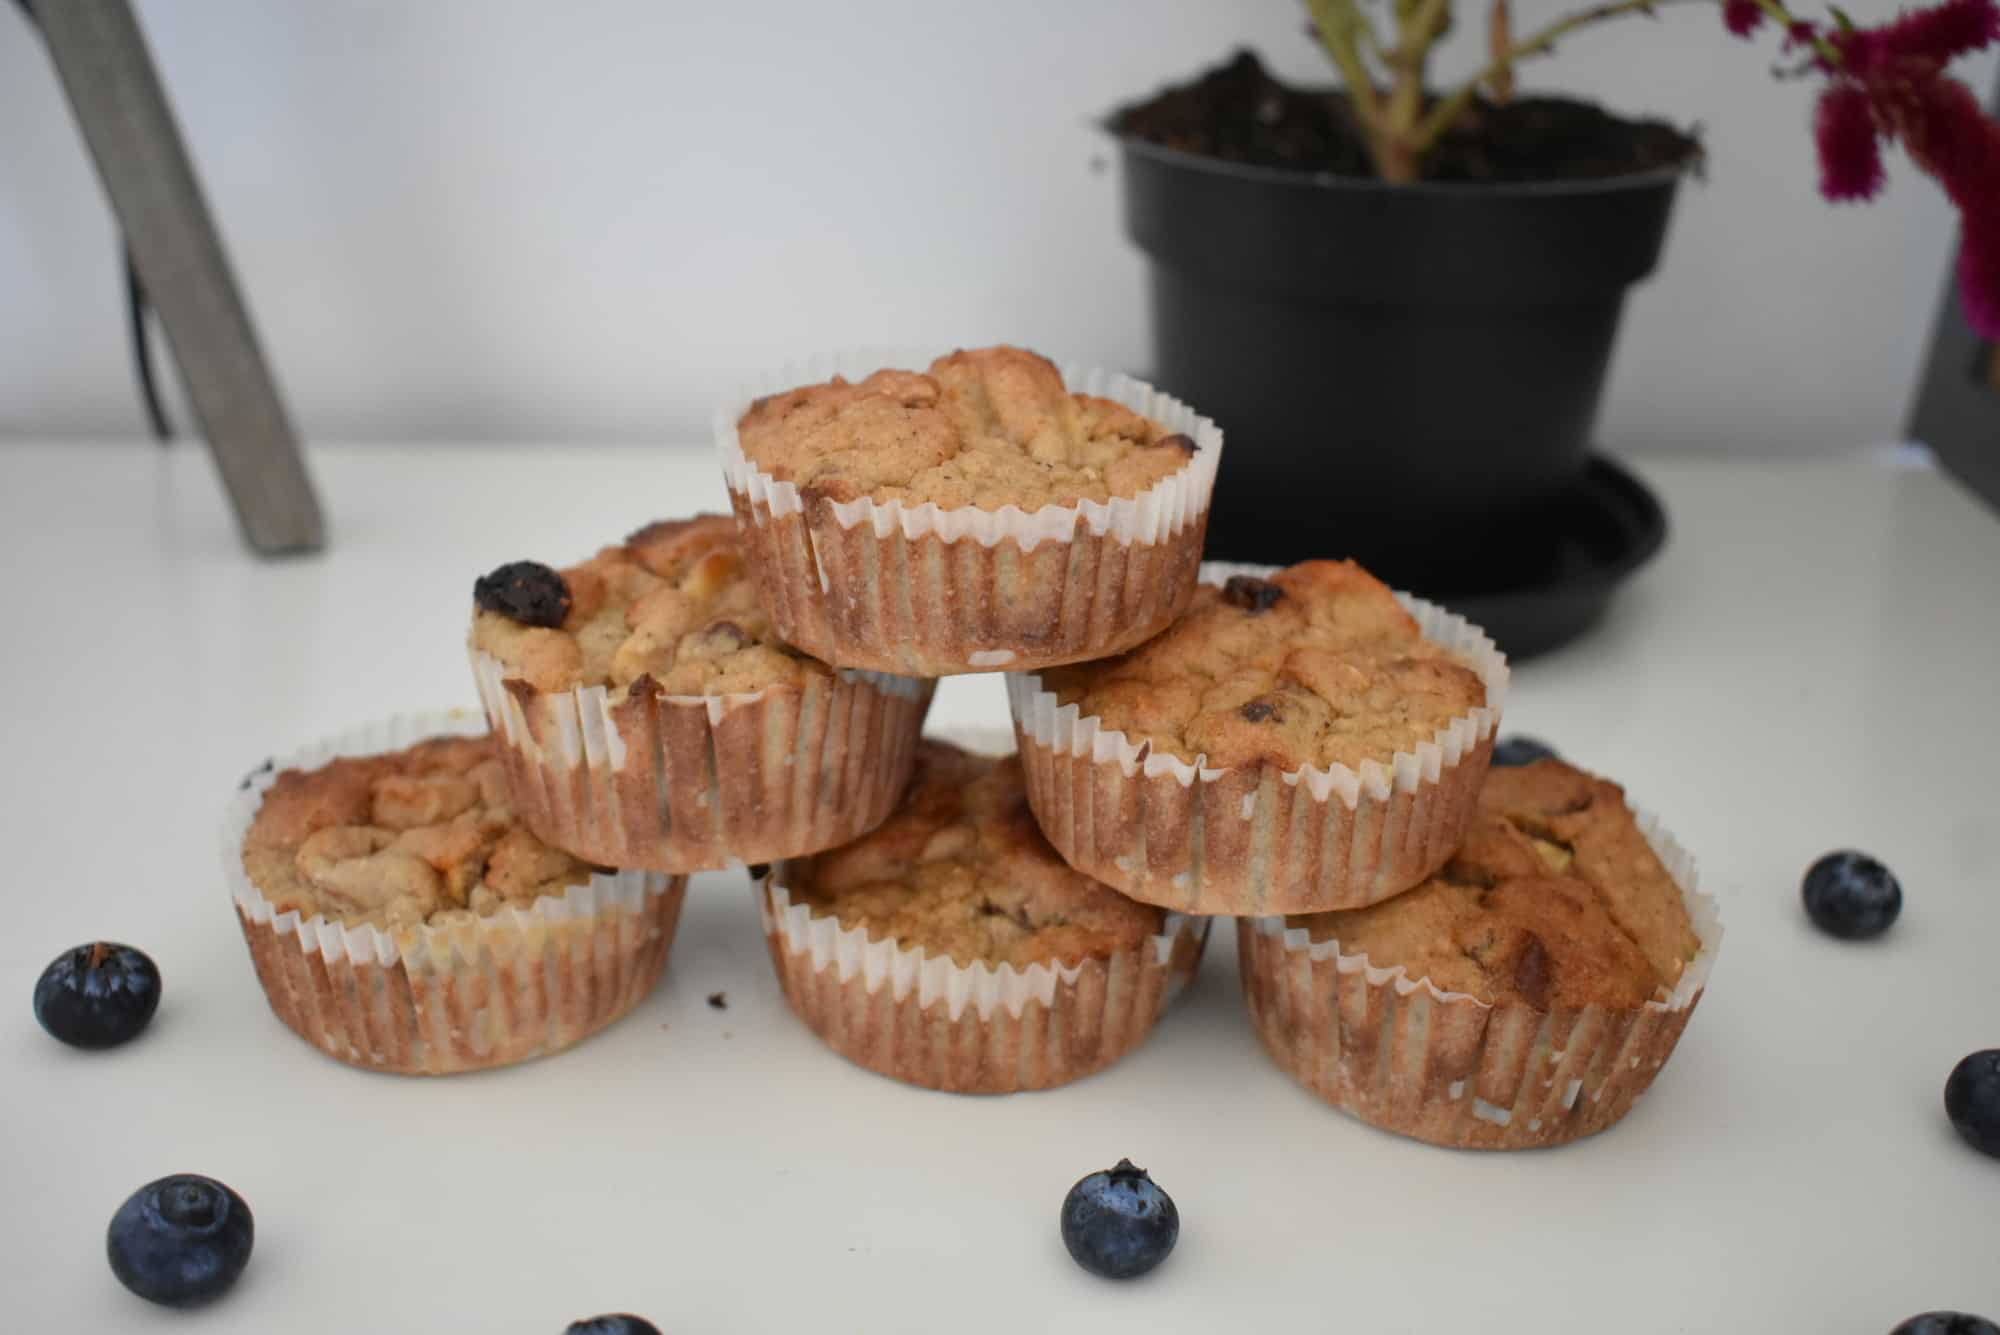 Havermoutmuffins met appel